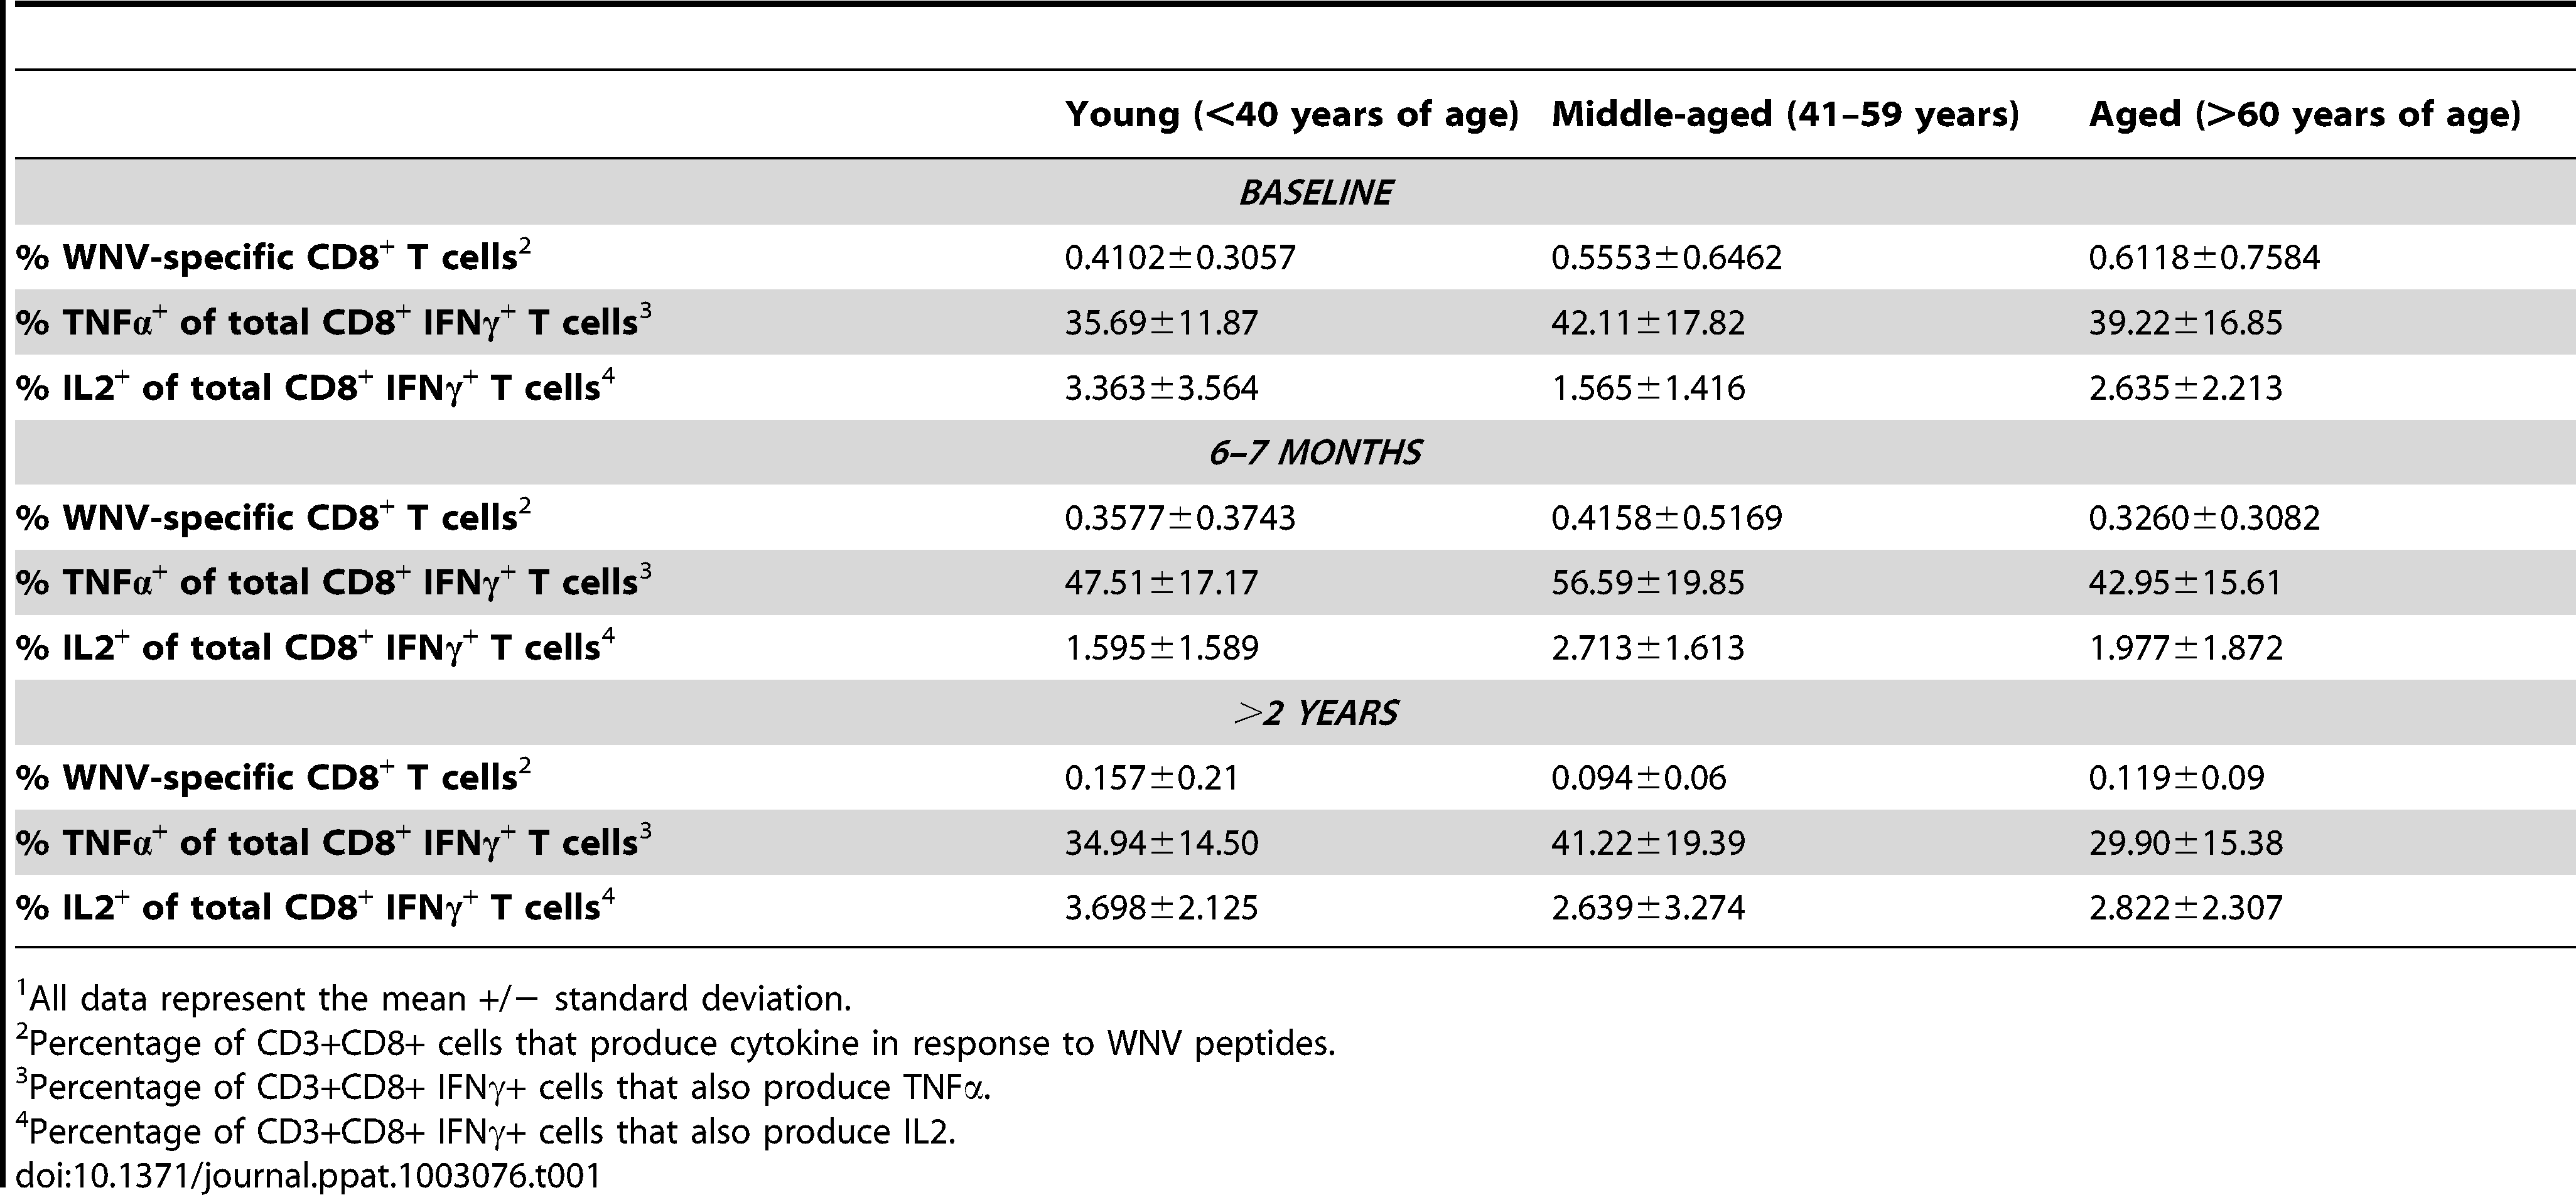 Stability of WNV-specific CD8+ T cell memory response is not influenced by age<em class=&quot;ref&quot;>1</em>.